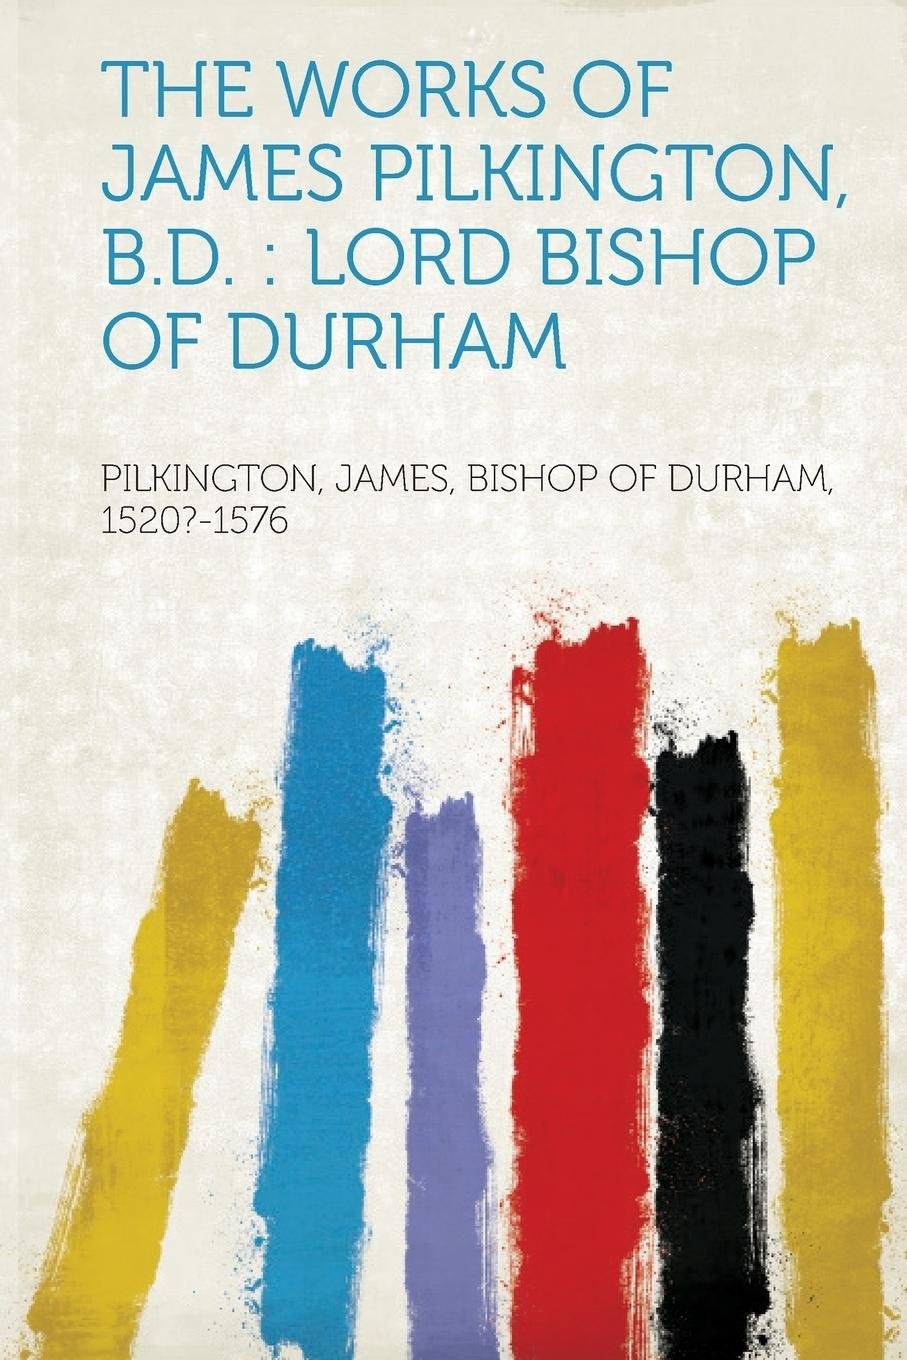 The Works of James Pilkington, B.D.: Lord Bishop of Durham PDF